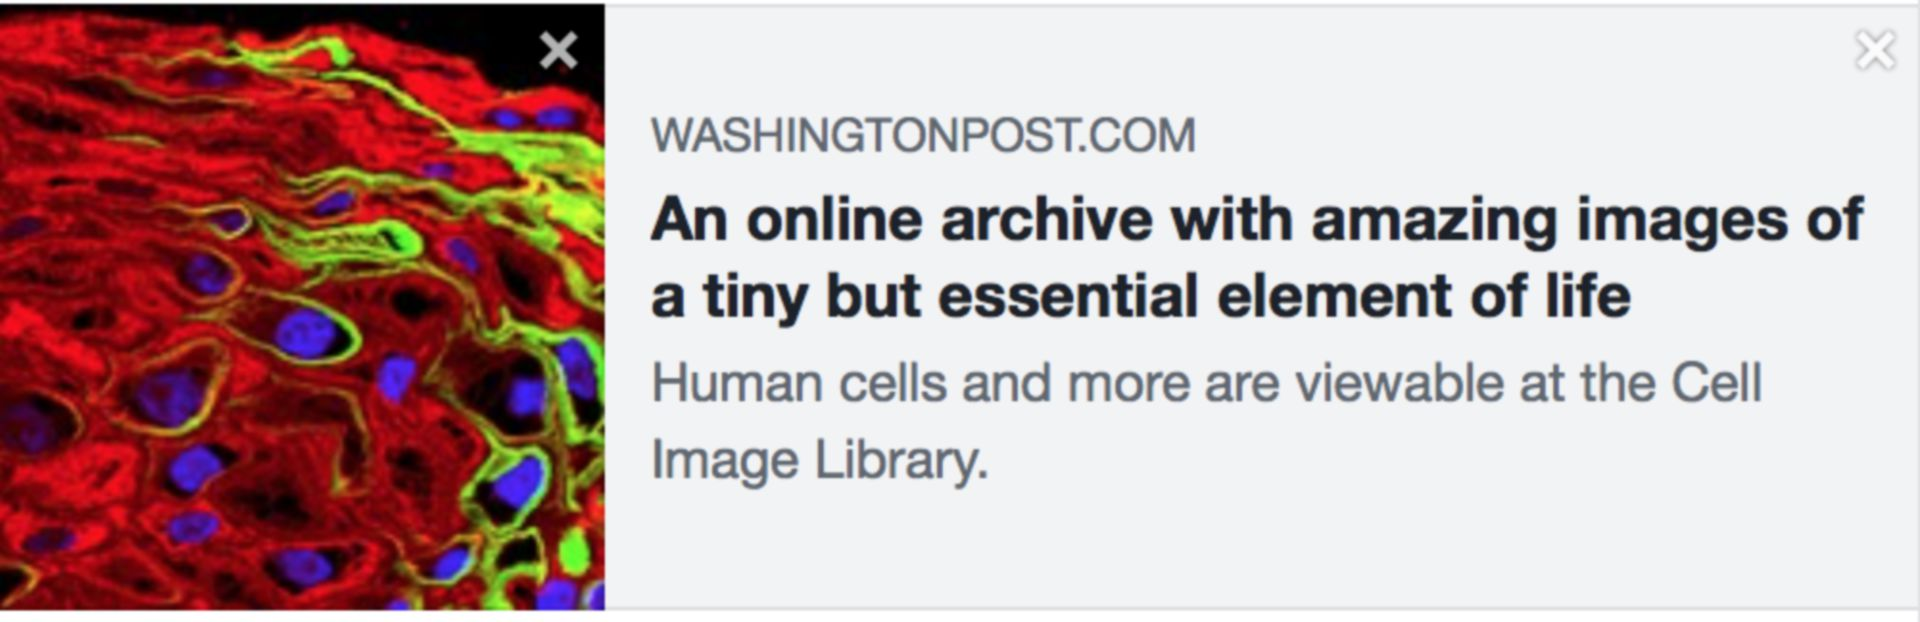 Article of the Week standing in for the Image of the Week – November 5, 2018  Great article about The Cell Image Library in The Washington Post.